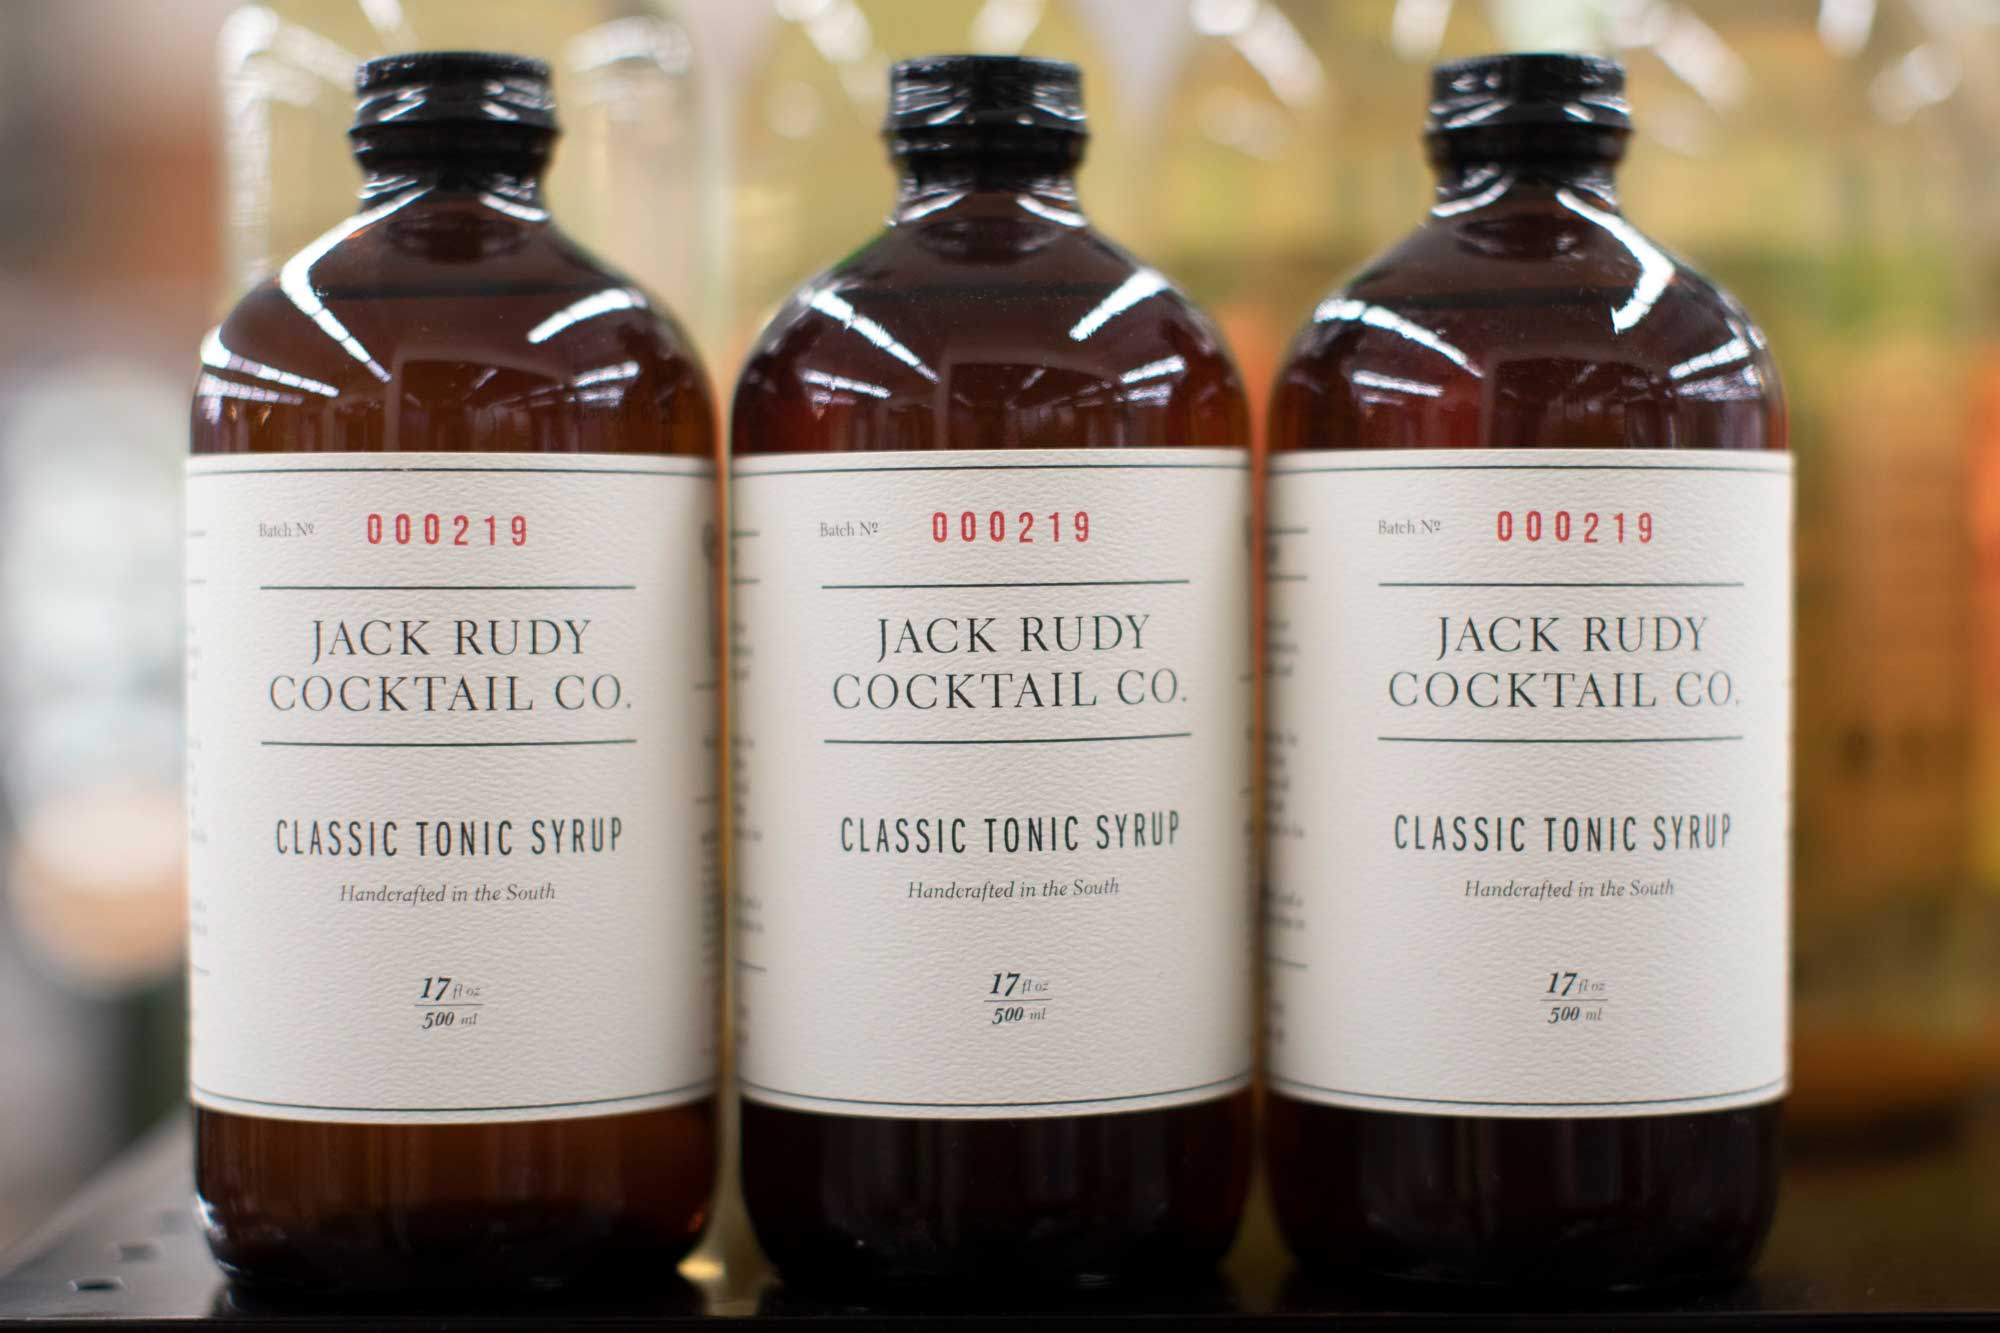 Jack Rudy Cocktail Co tonic syrup